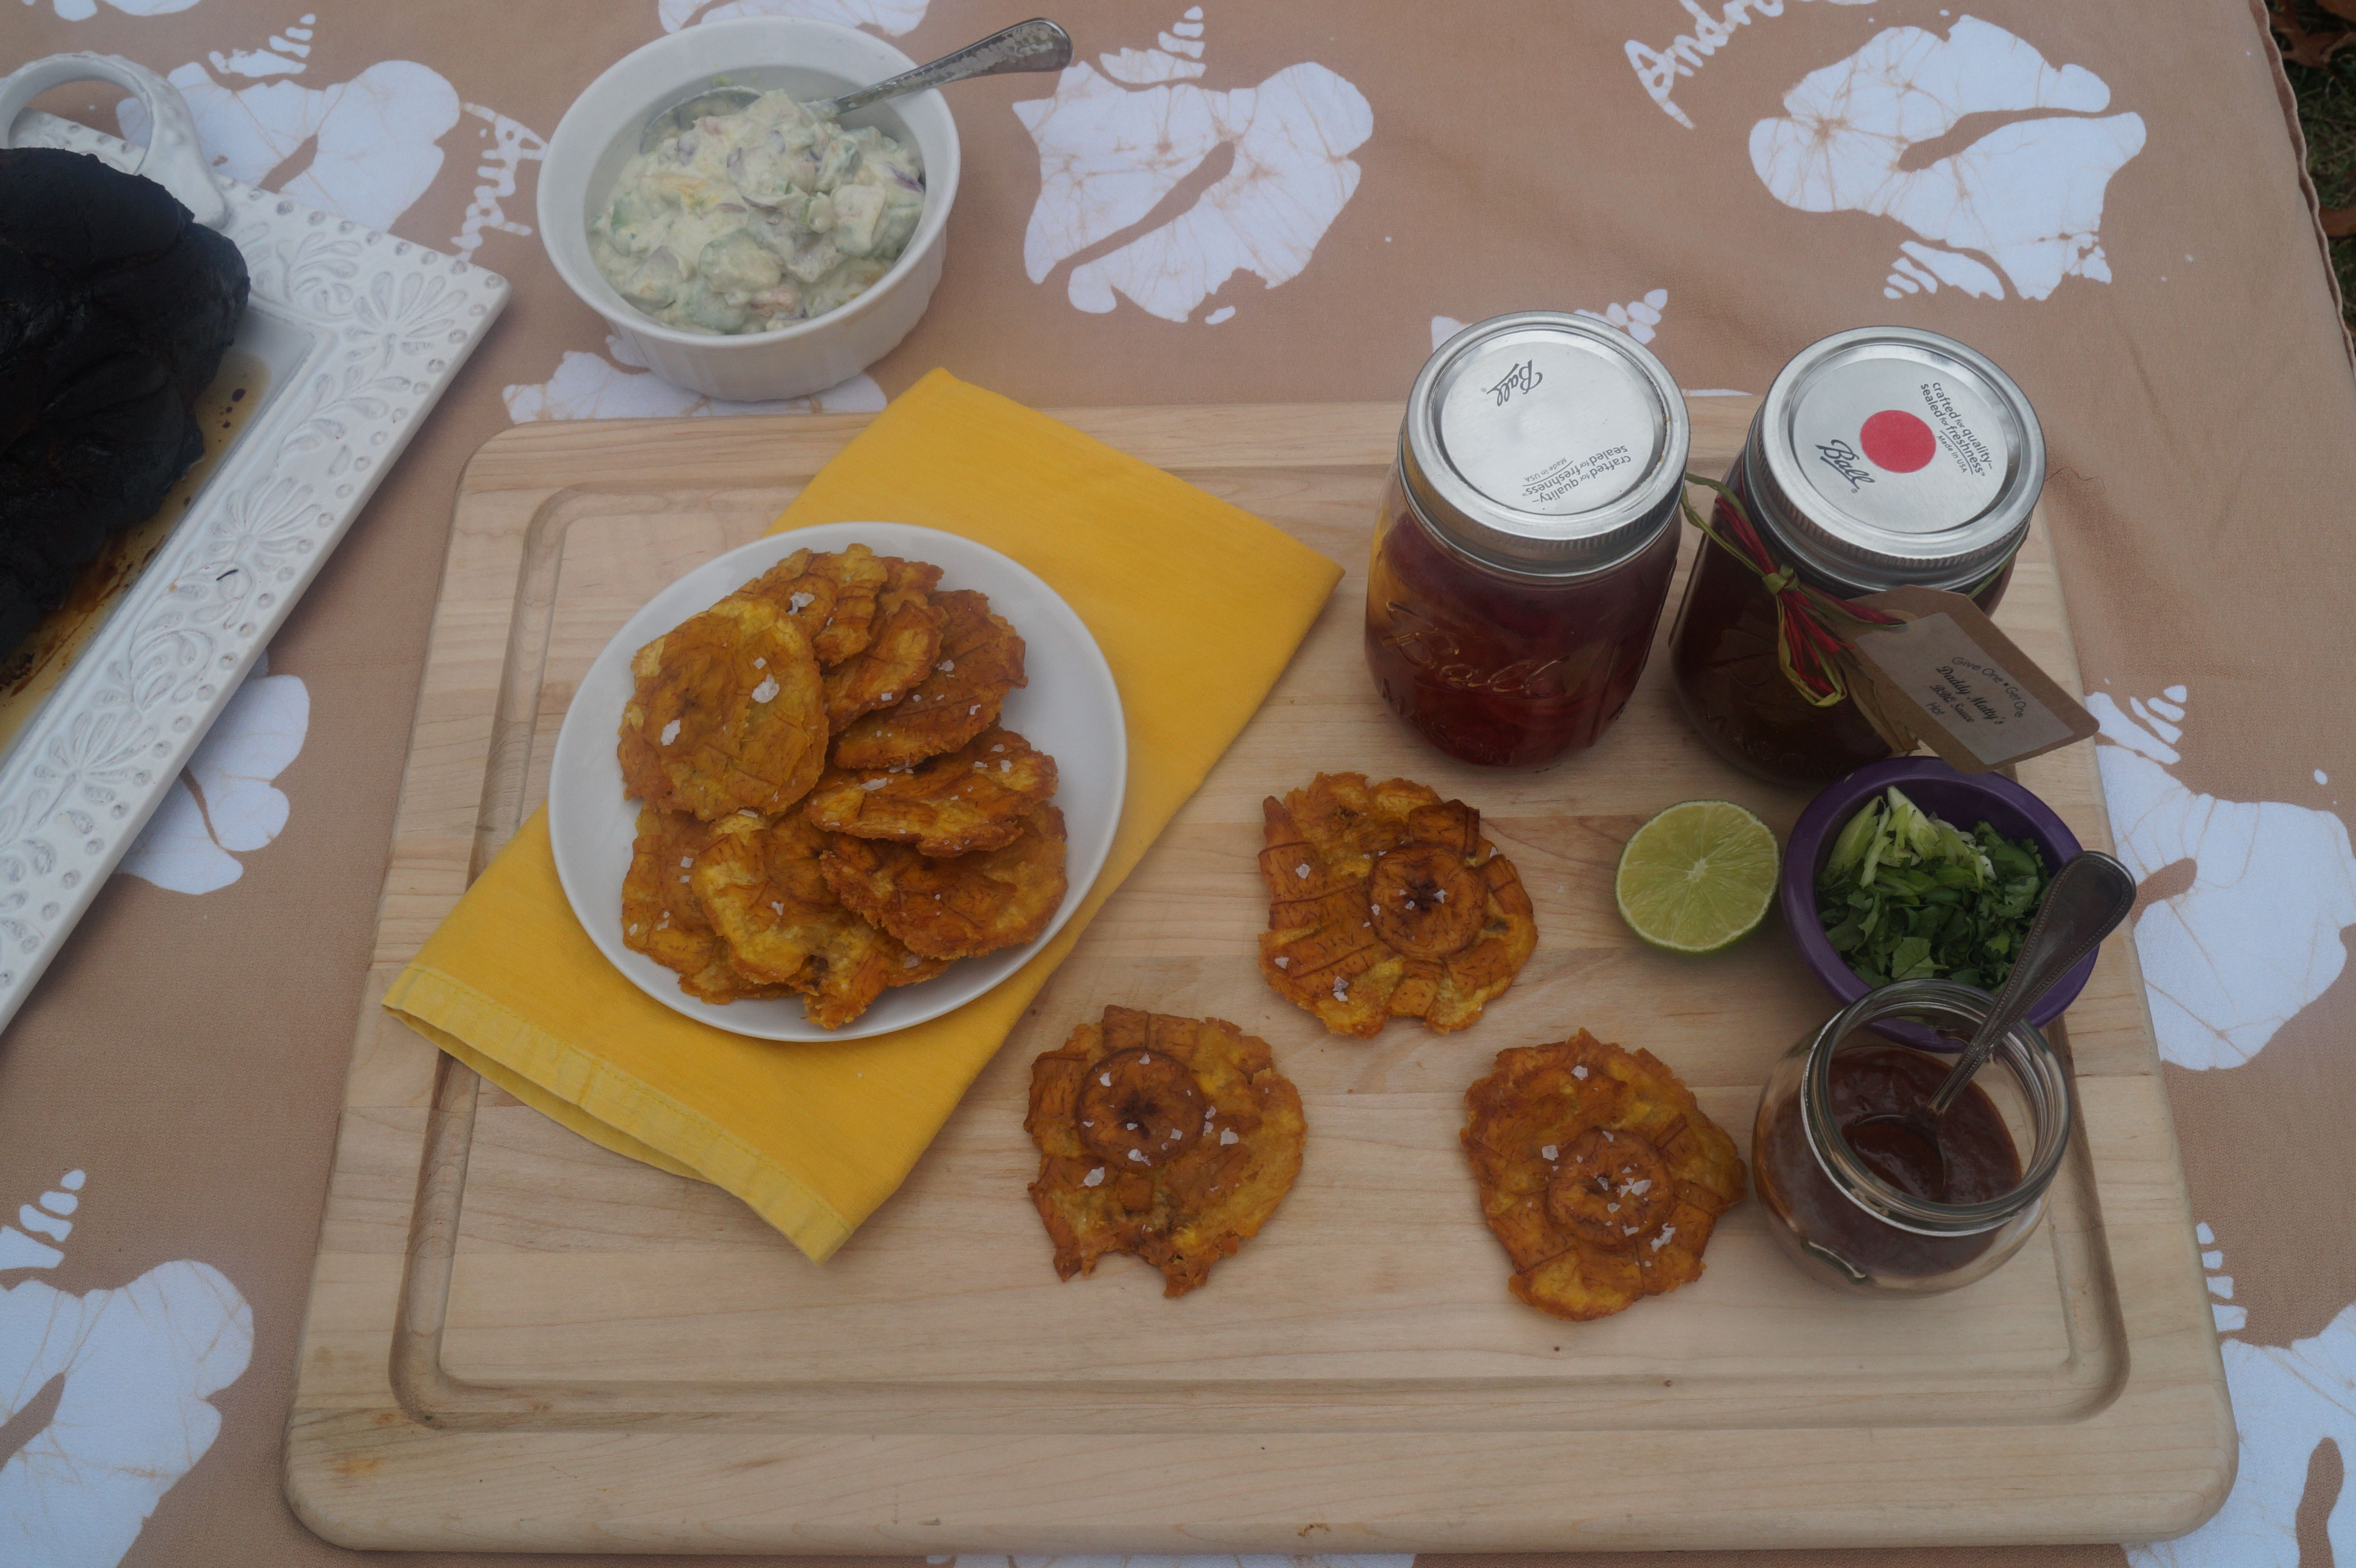 Let's make some Pulled Pork on Tostones with Fresh Fruit Salsa tossed in salty Coconut Milk!